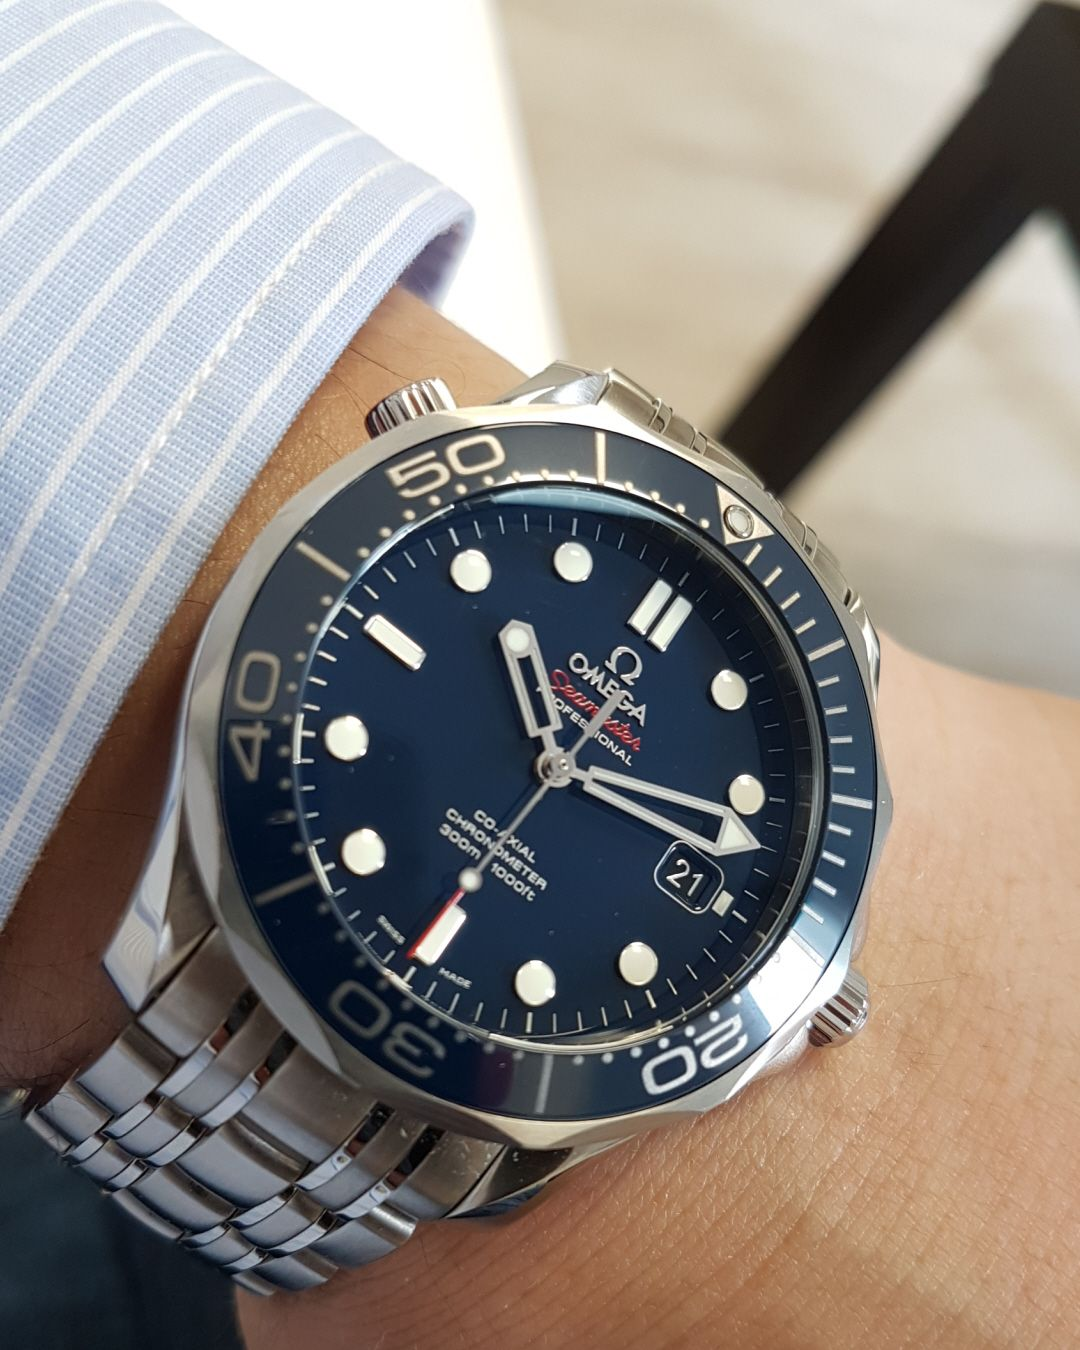 cc81df0024eb OMEGA Men s Steel Bracelet  amp  Case Automatic Blue Dial Analog Watch  Omega Seamaster Diver 300m